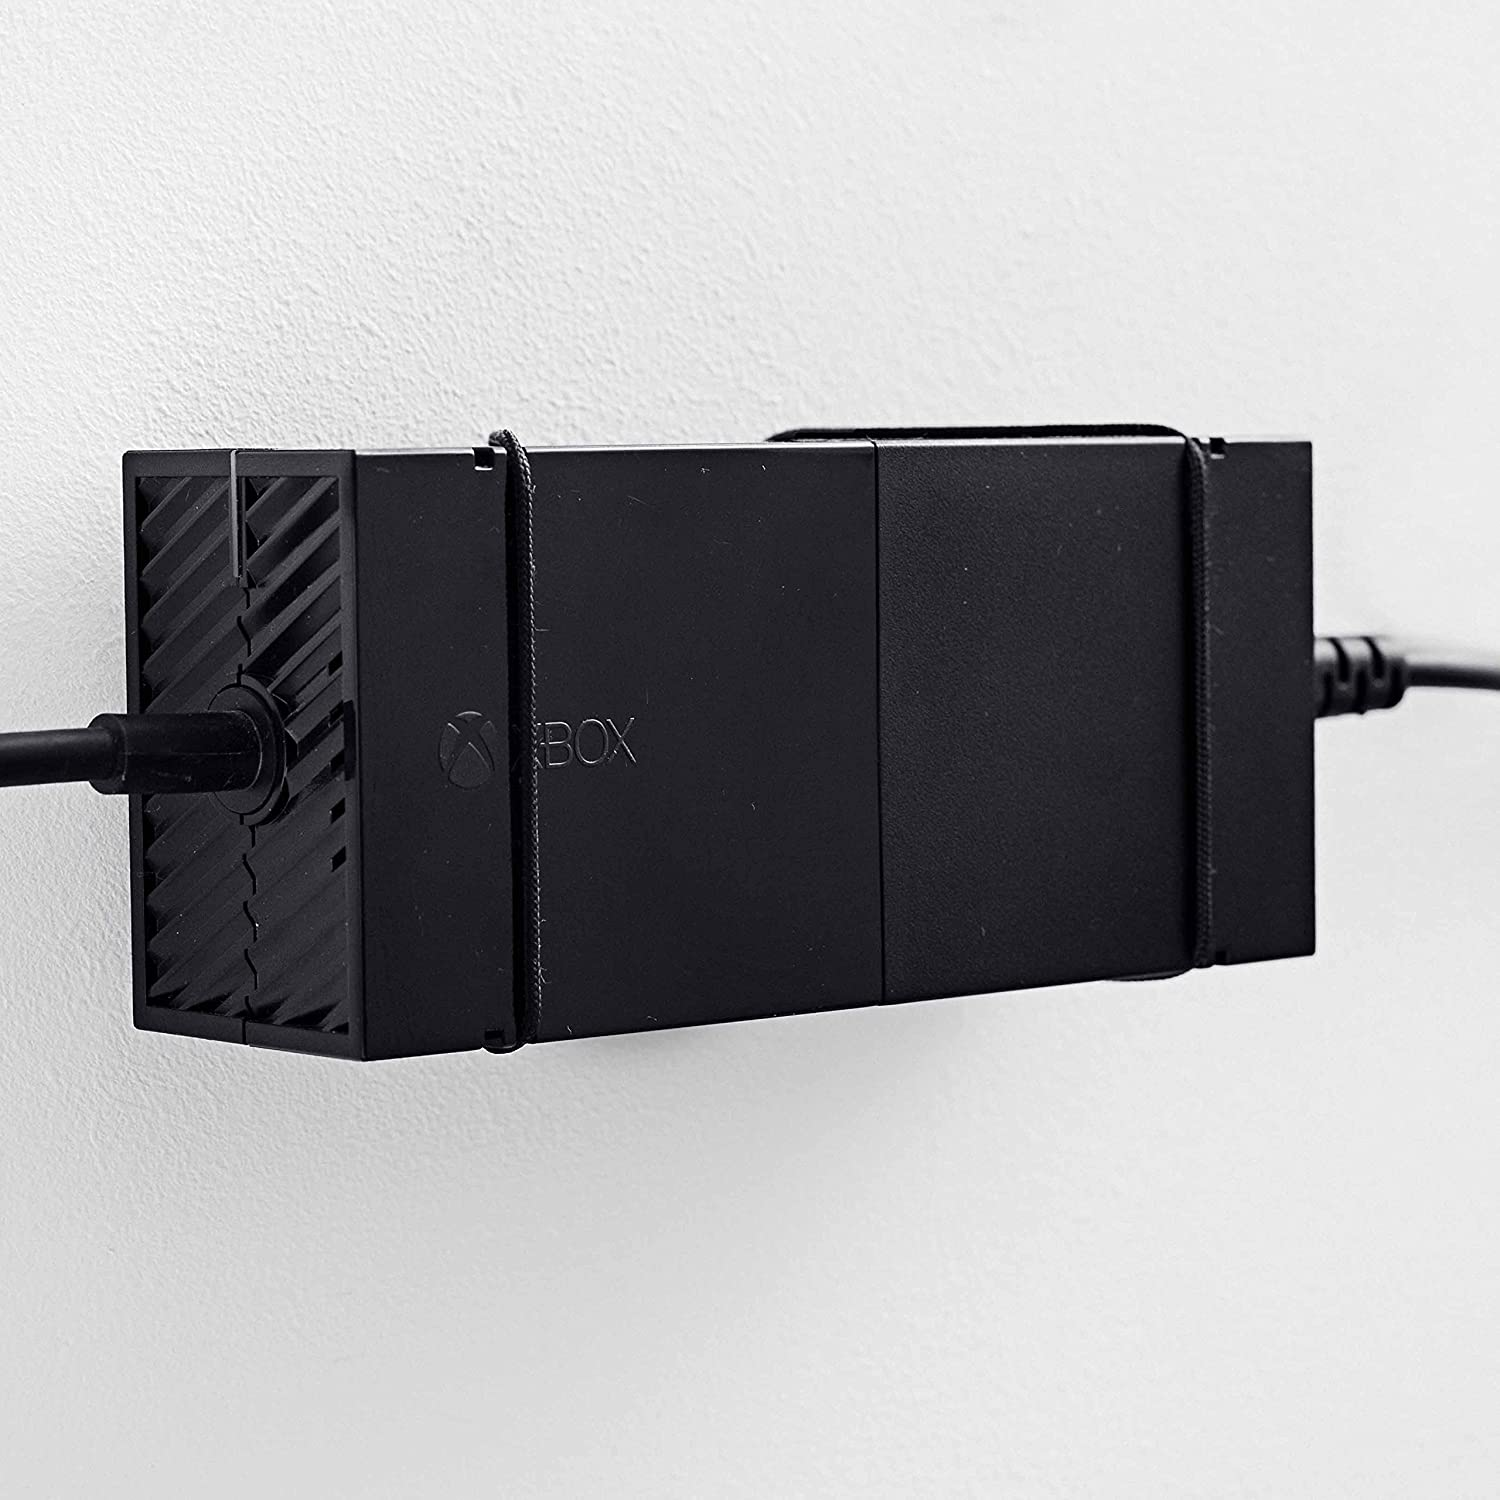 Floating Grip Xbox One Vertical Wire Wall Mount Black Wiring Money To Denmark Patent Pending And Proprietary Design Made In Only For Storage If Using The